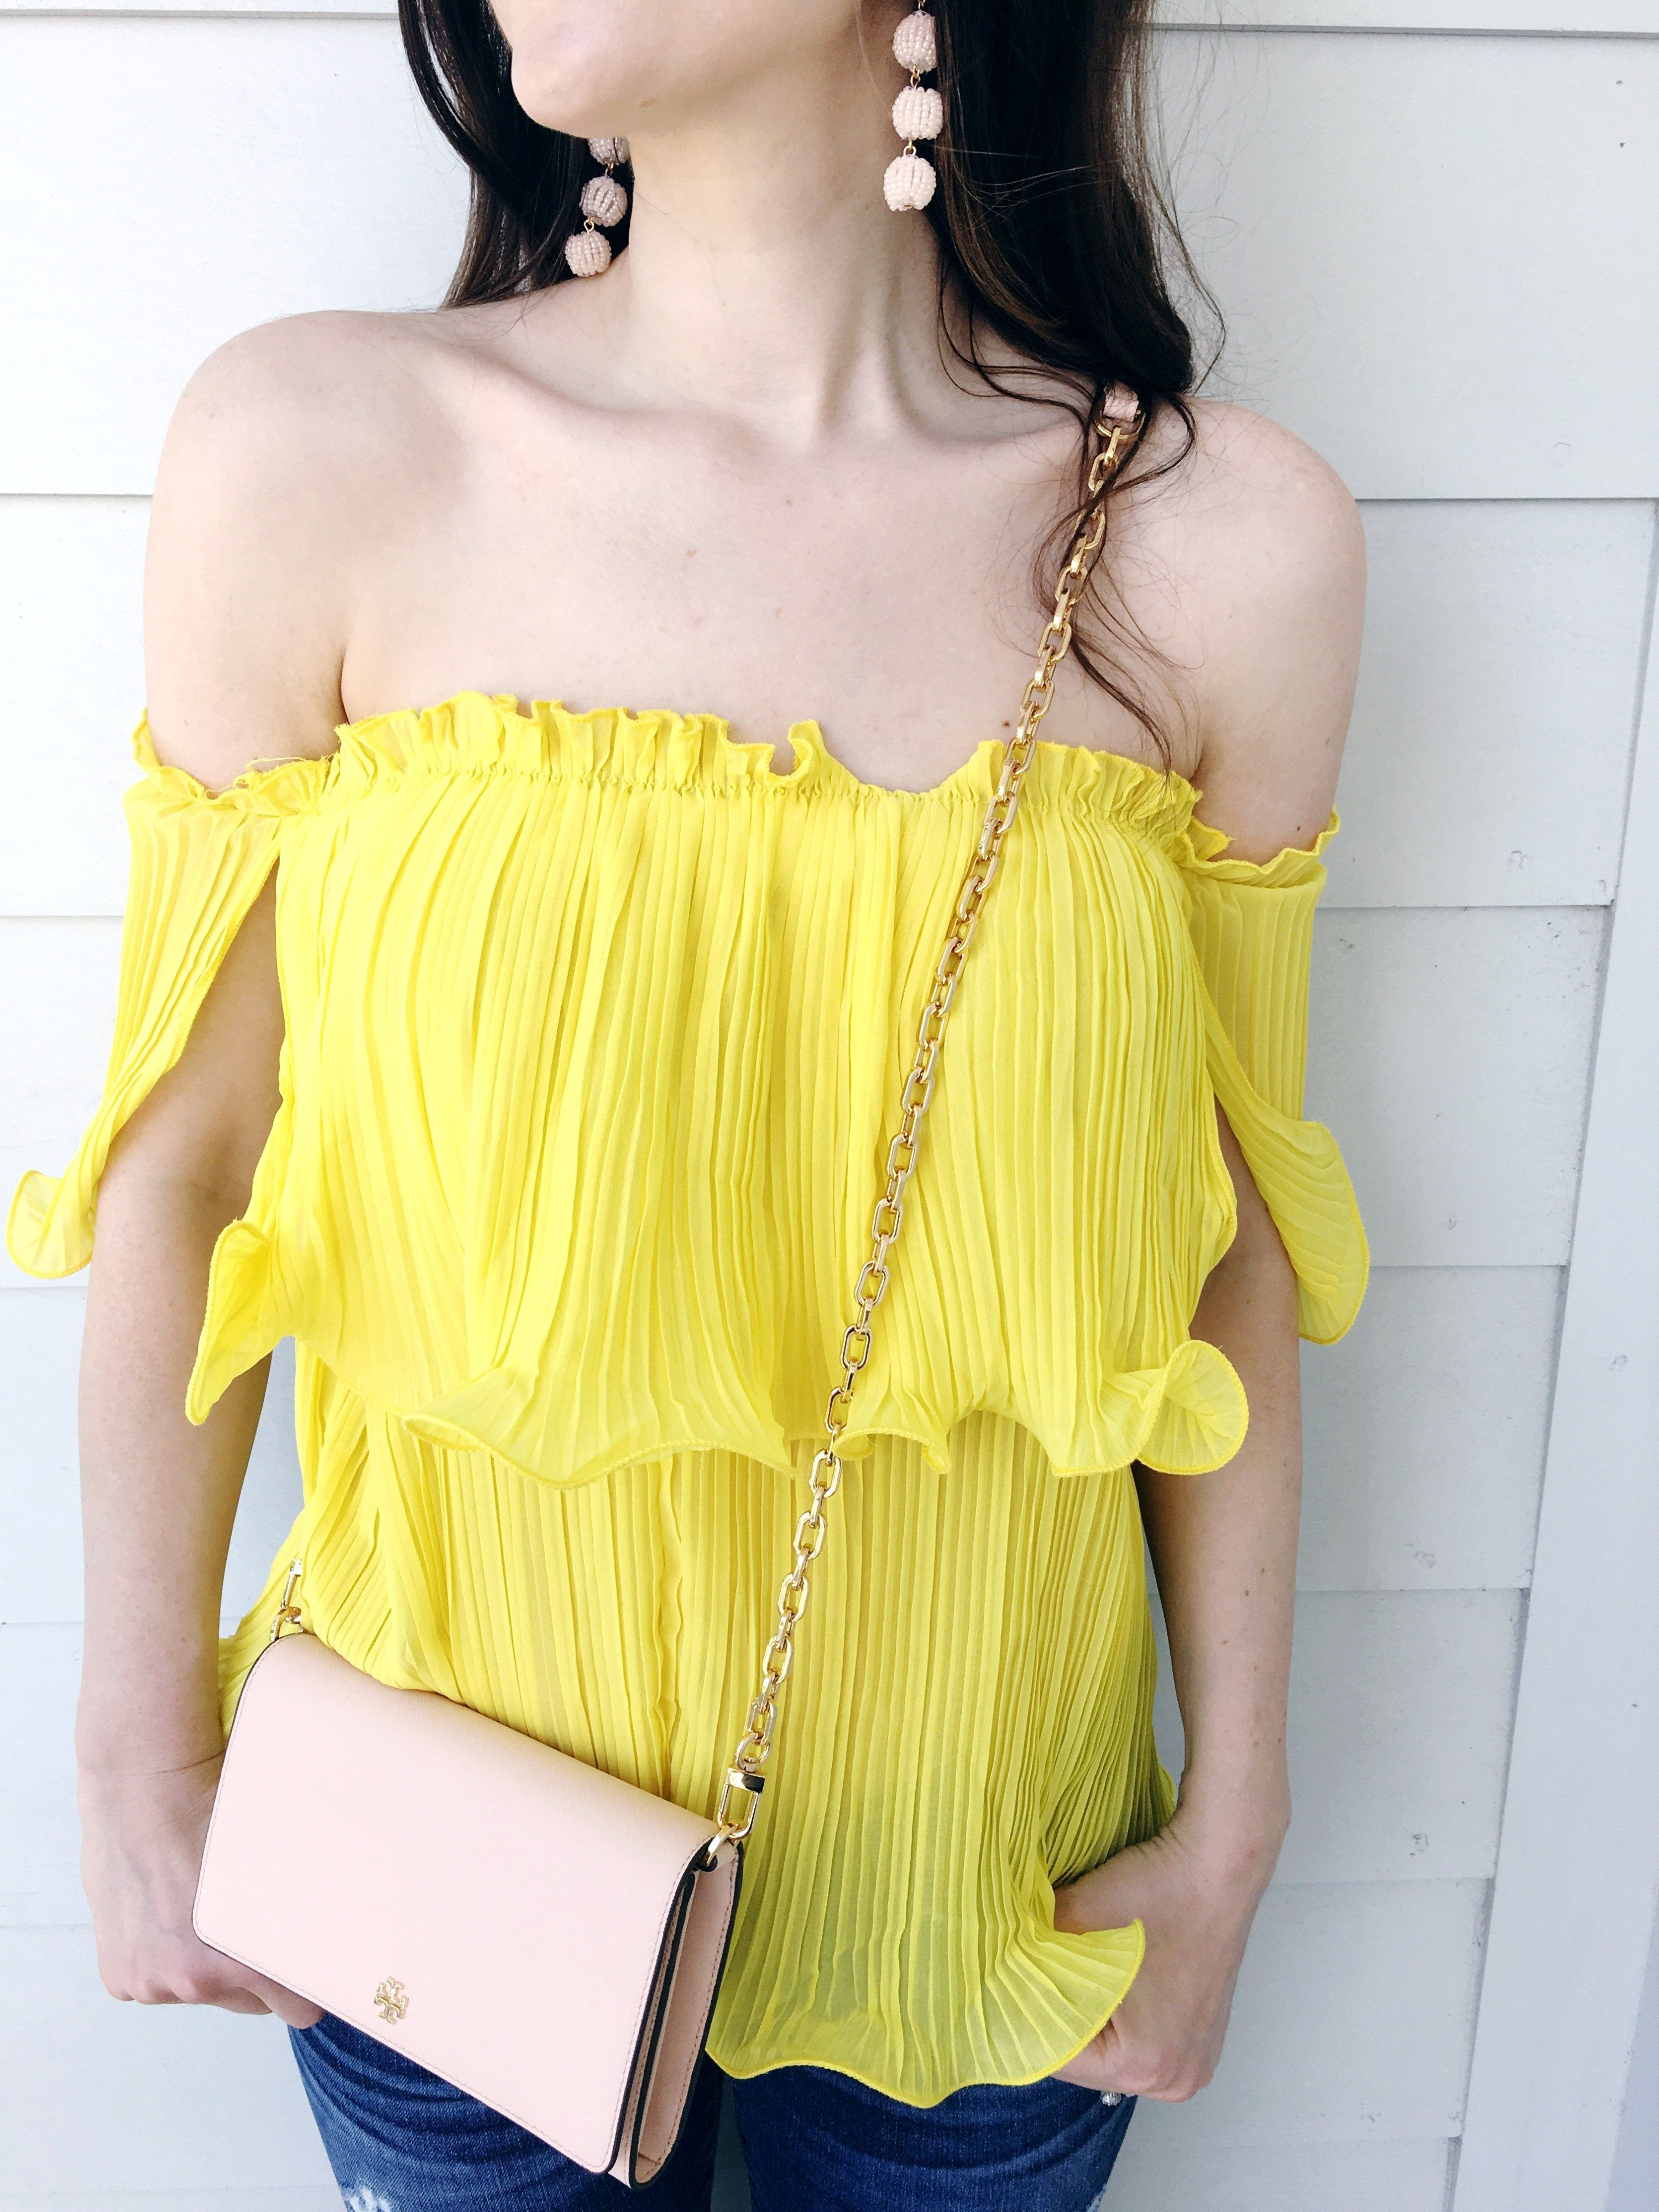 40d720528d237 Yellow Off the Shoulder Top - Veronika s Blushing